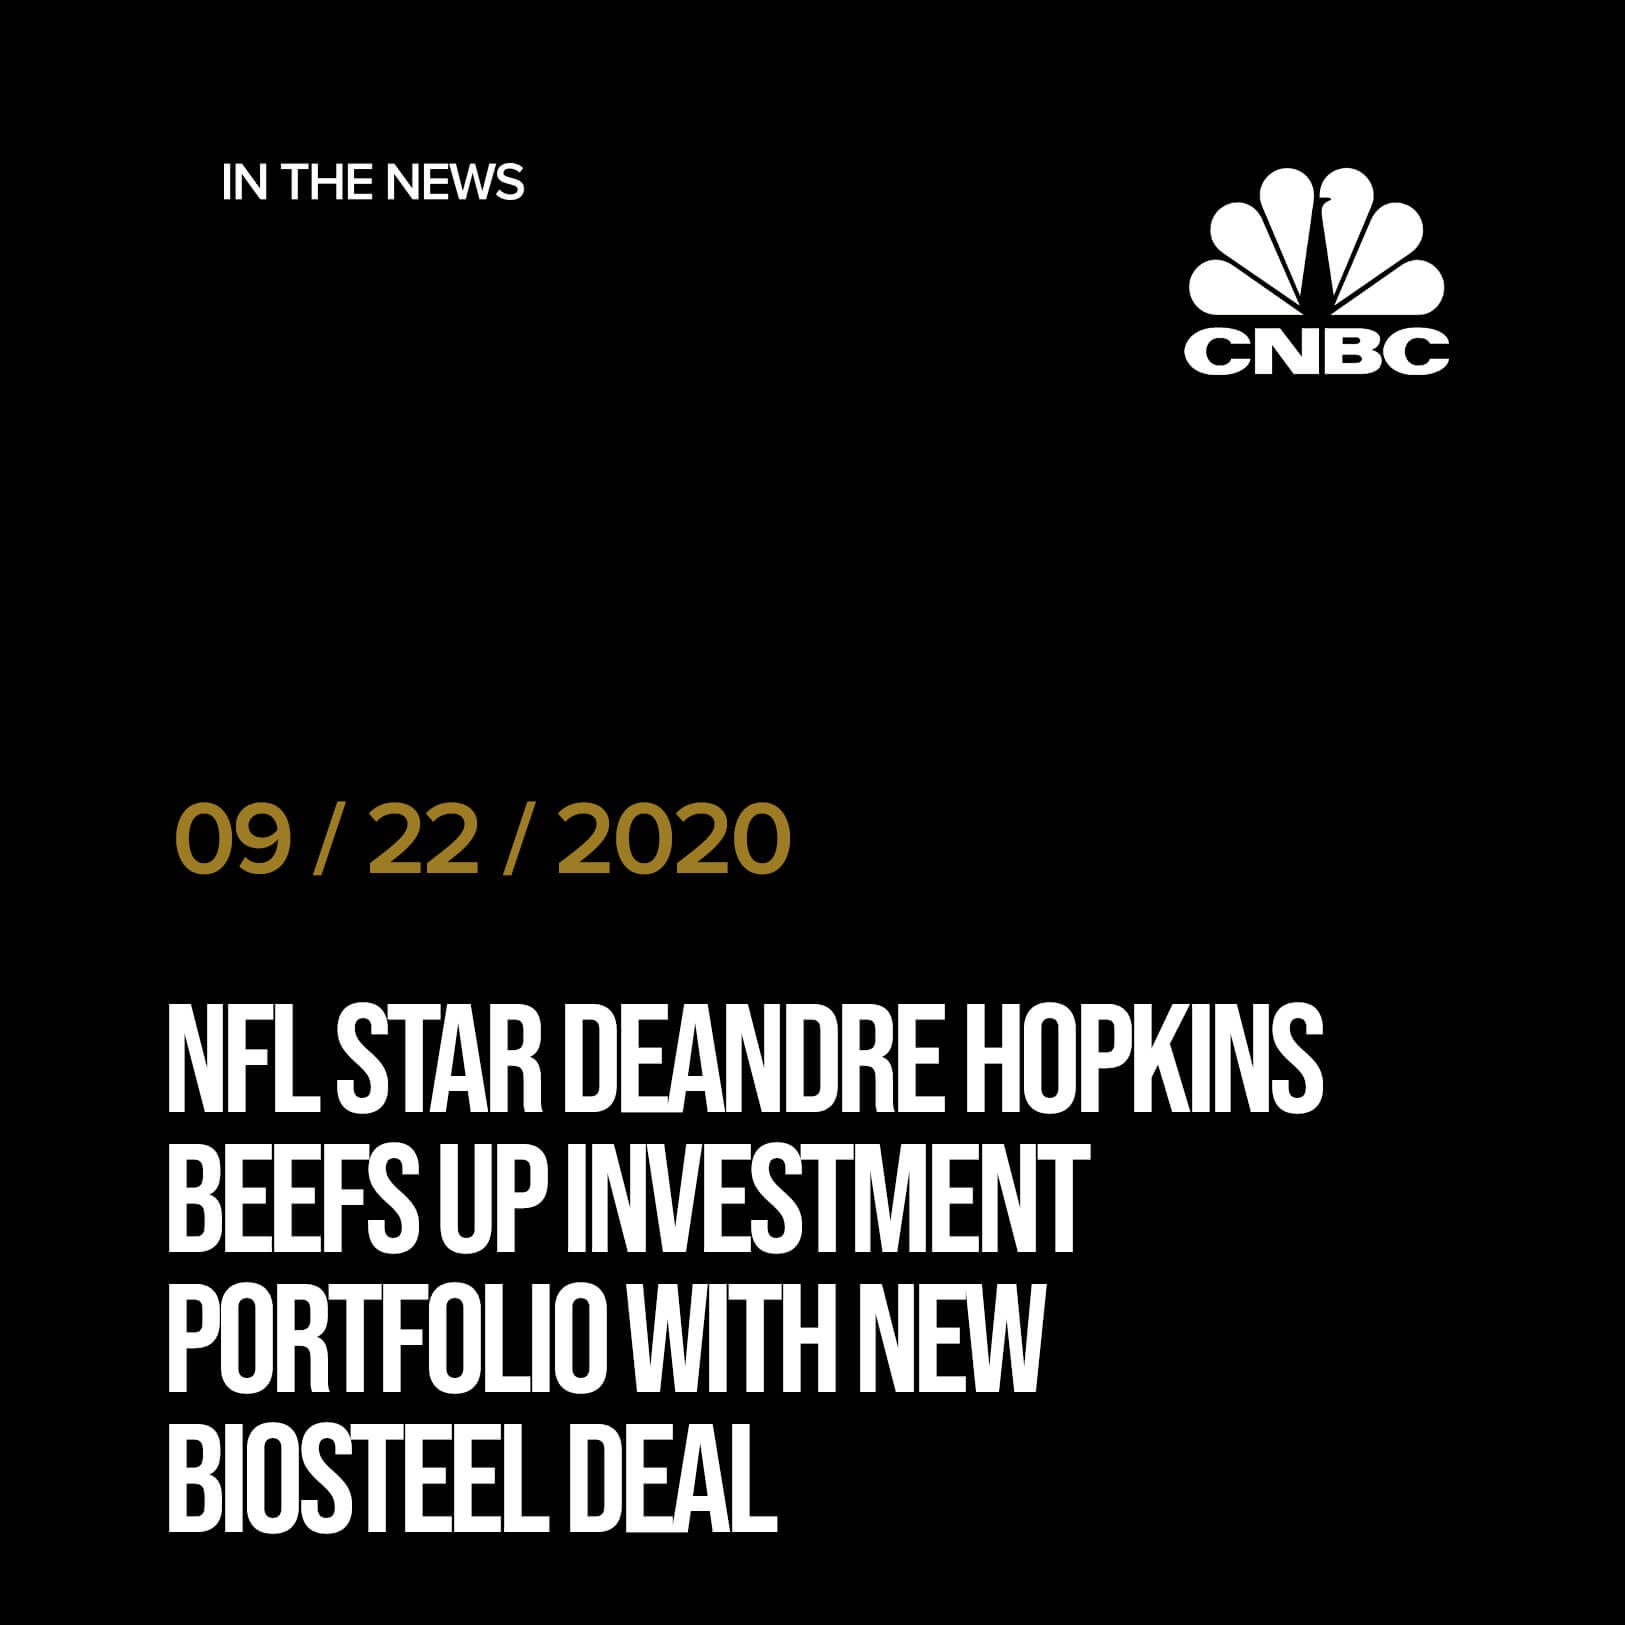 NFL star DeAndre Hopkins beefs up investment portfolio with new BioSteel deal